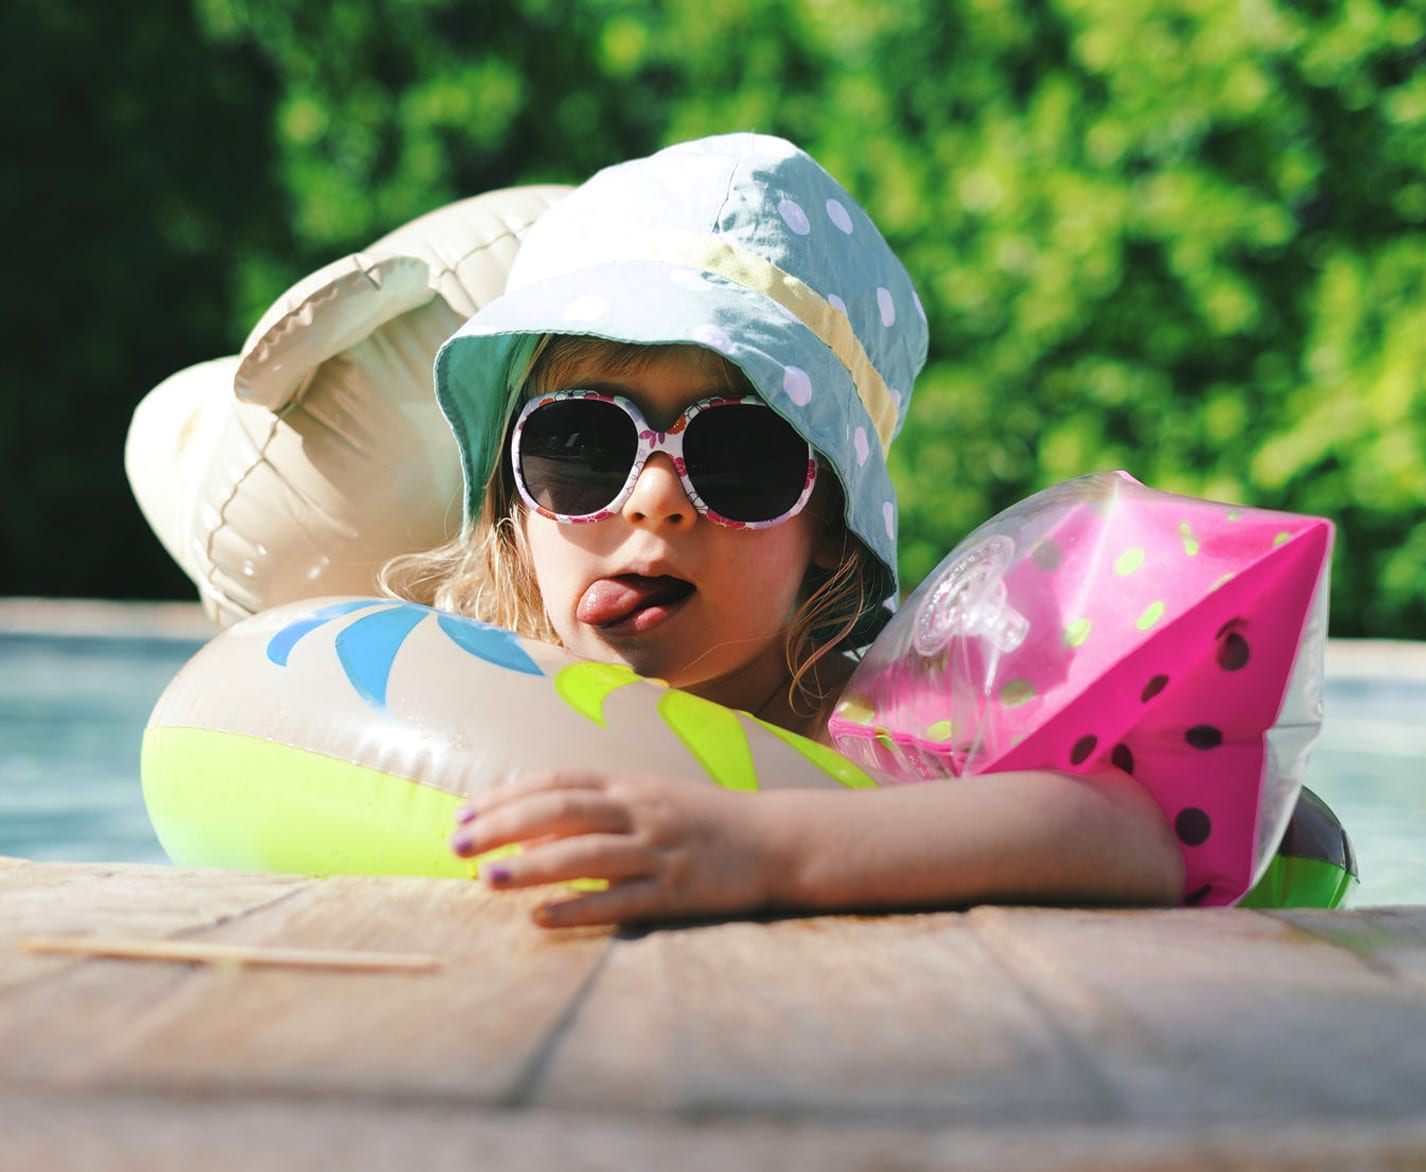 Kids' Sunglasses - A Necessity, not a Fashionable Frill